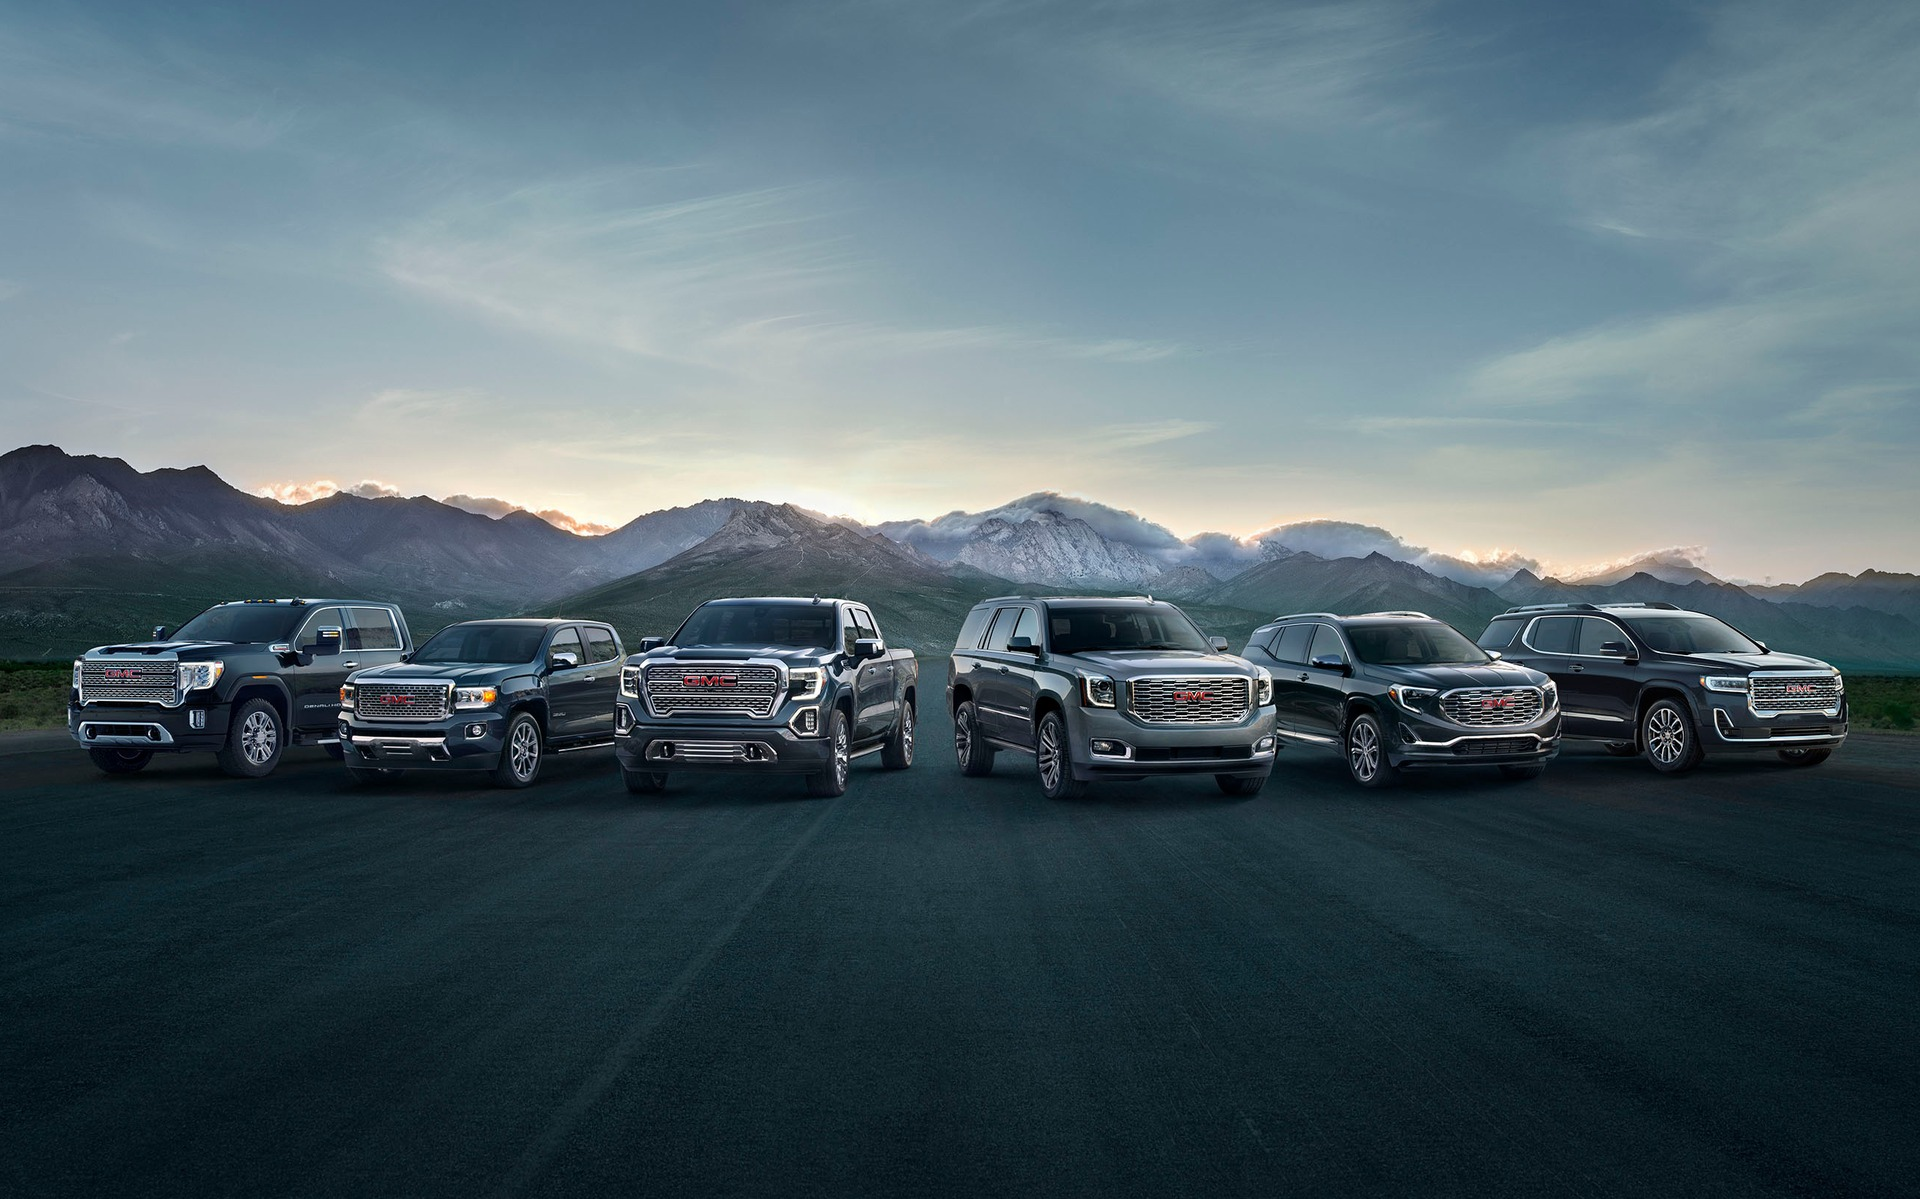 2020 GMC Acadia Adds AT4 Trim, Turbo Engine >> Gmc Announces 2020 Changes And At4 Sub Brand Expansion The Car Guide